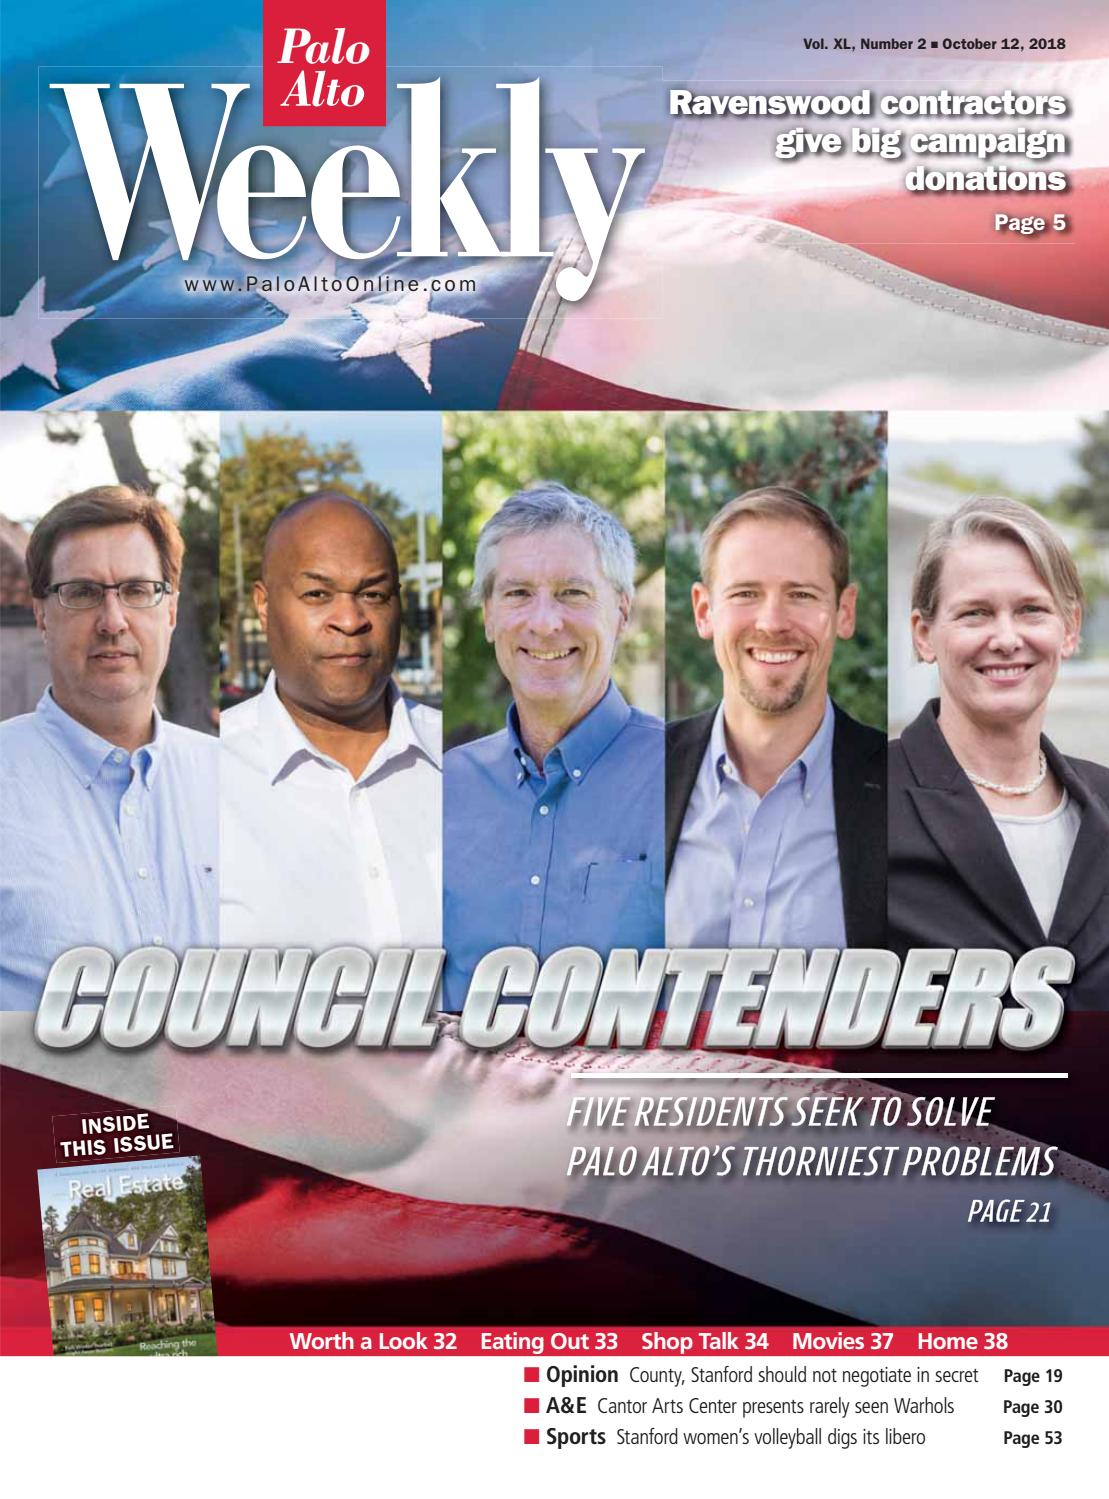 Palo Alto Weekly October 12, 2018 by Palo Alto Weekly - issuu